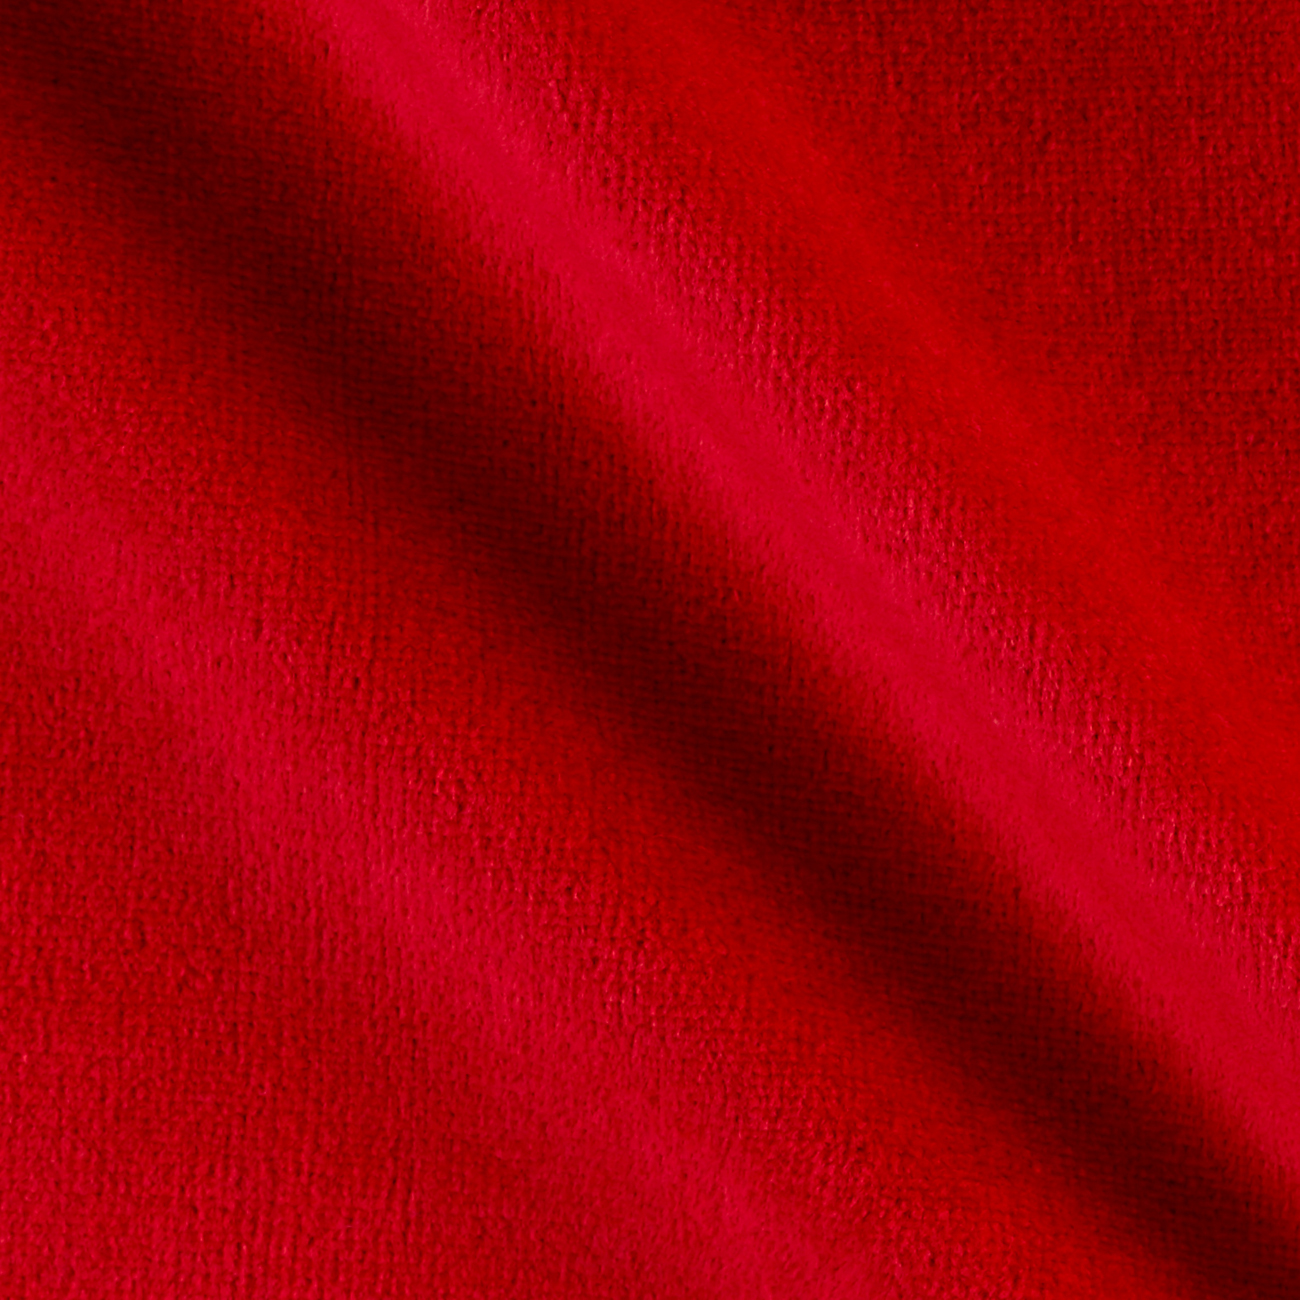 Solid Velour Red MX Fabric by Mike Cannety in USA